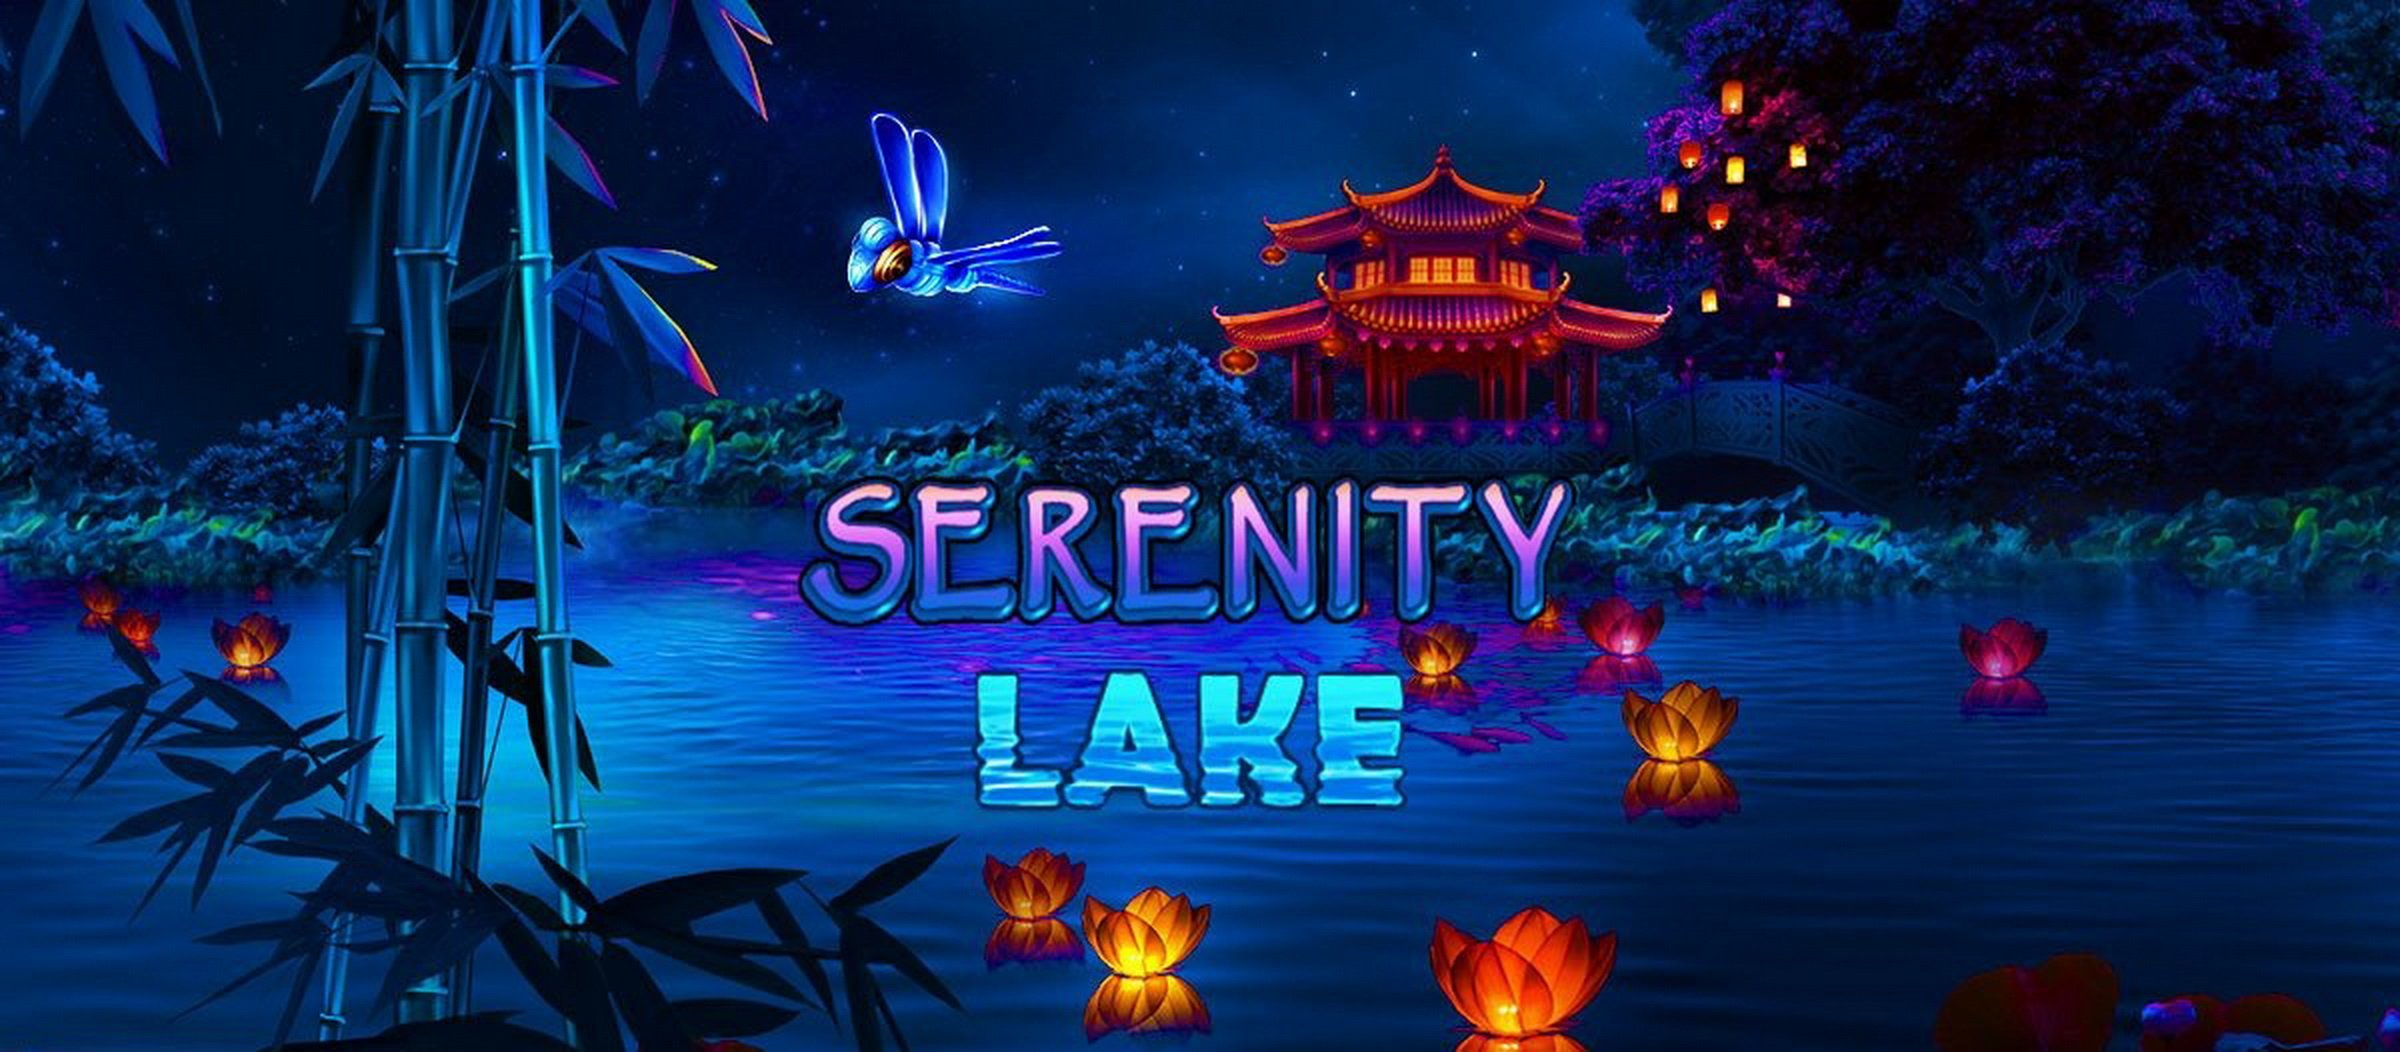 The Serenity Lake Online Slot Demo Game by bet365 Software